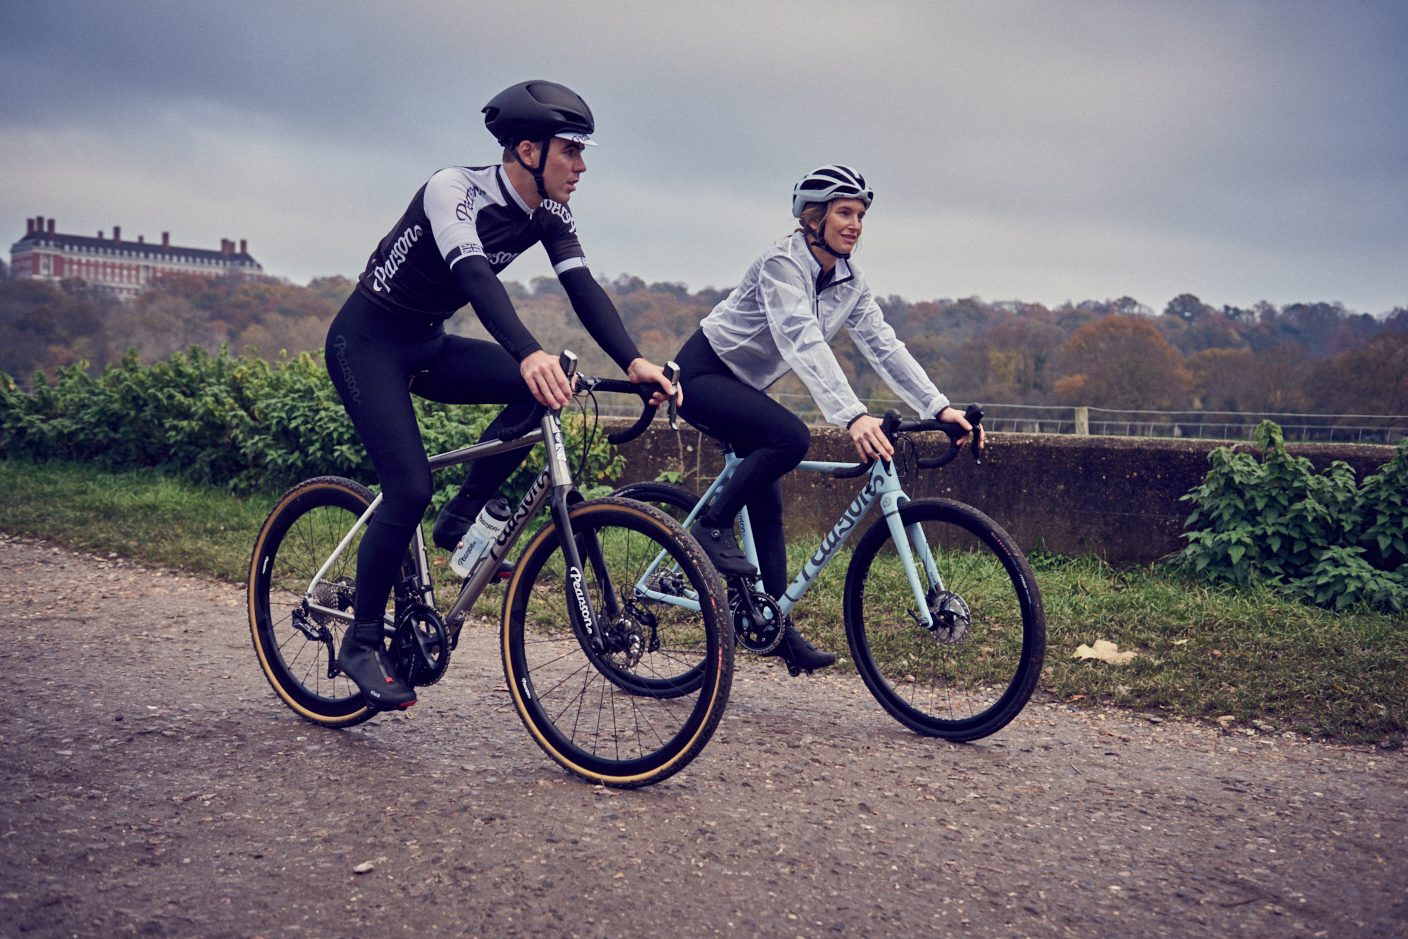 World's oldest bike business launches gravel ride series - Cycling Weekly